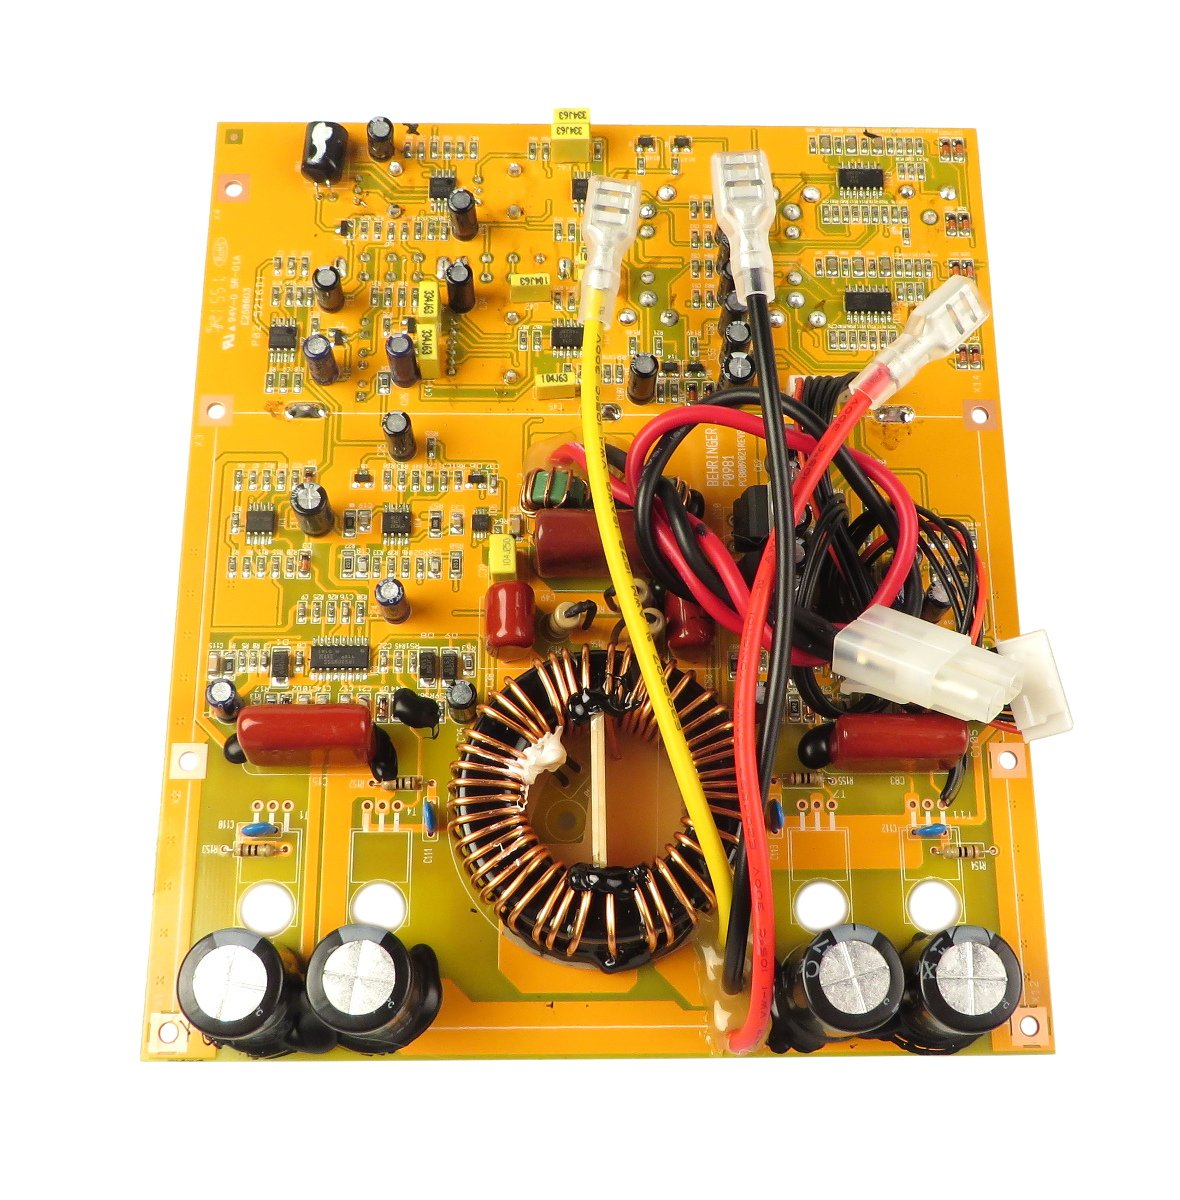 Amp PCB Assembly for B1800D-PRO and B1500D-PRO